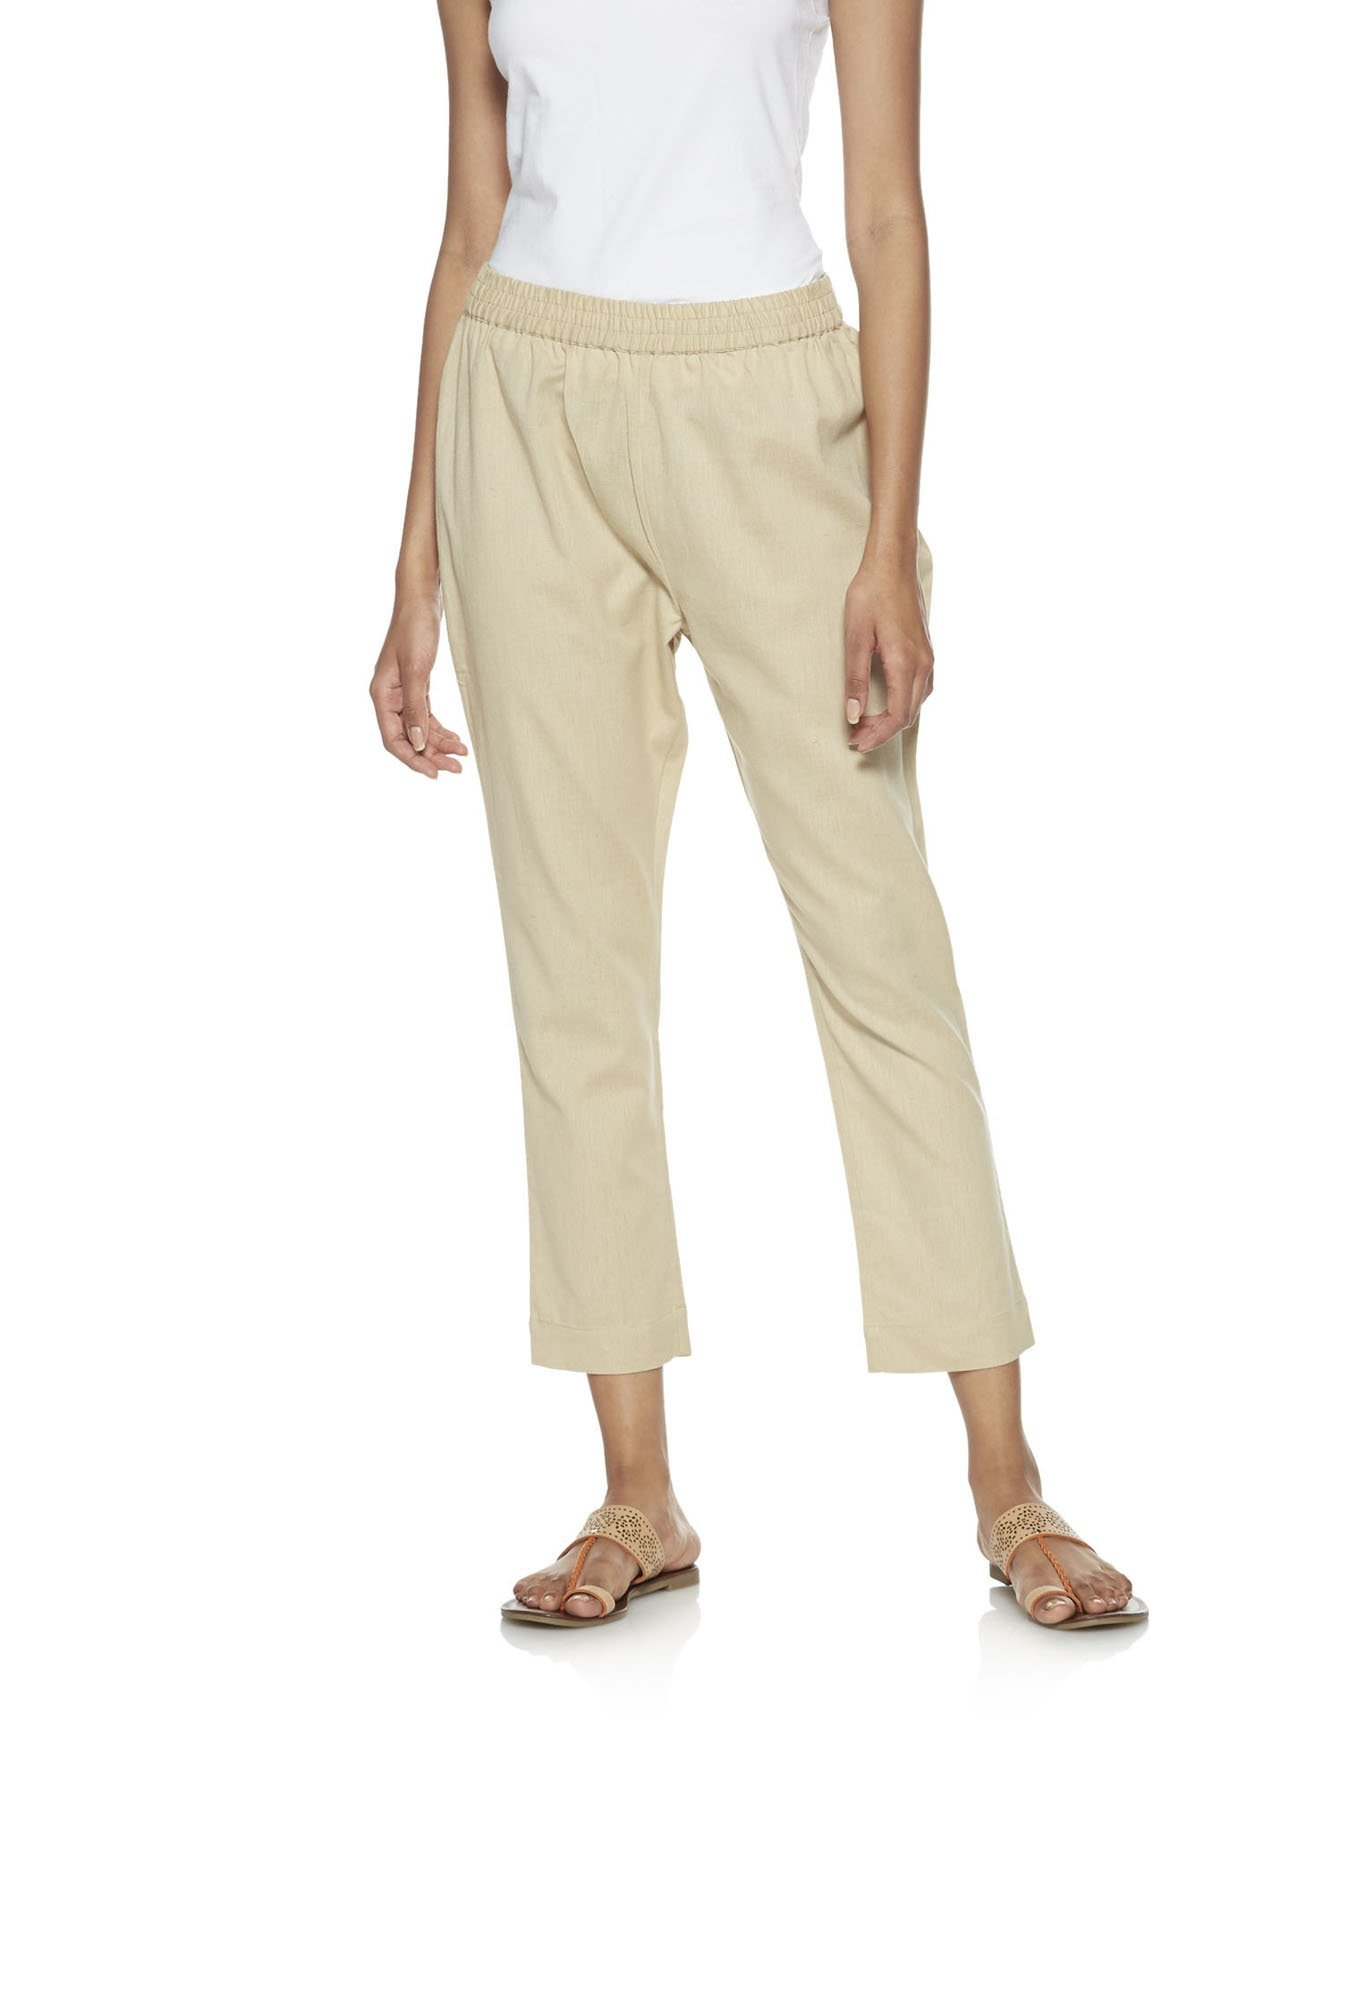 Utsa by Westside Beige Ethnic Pants